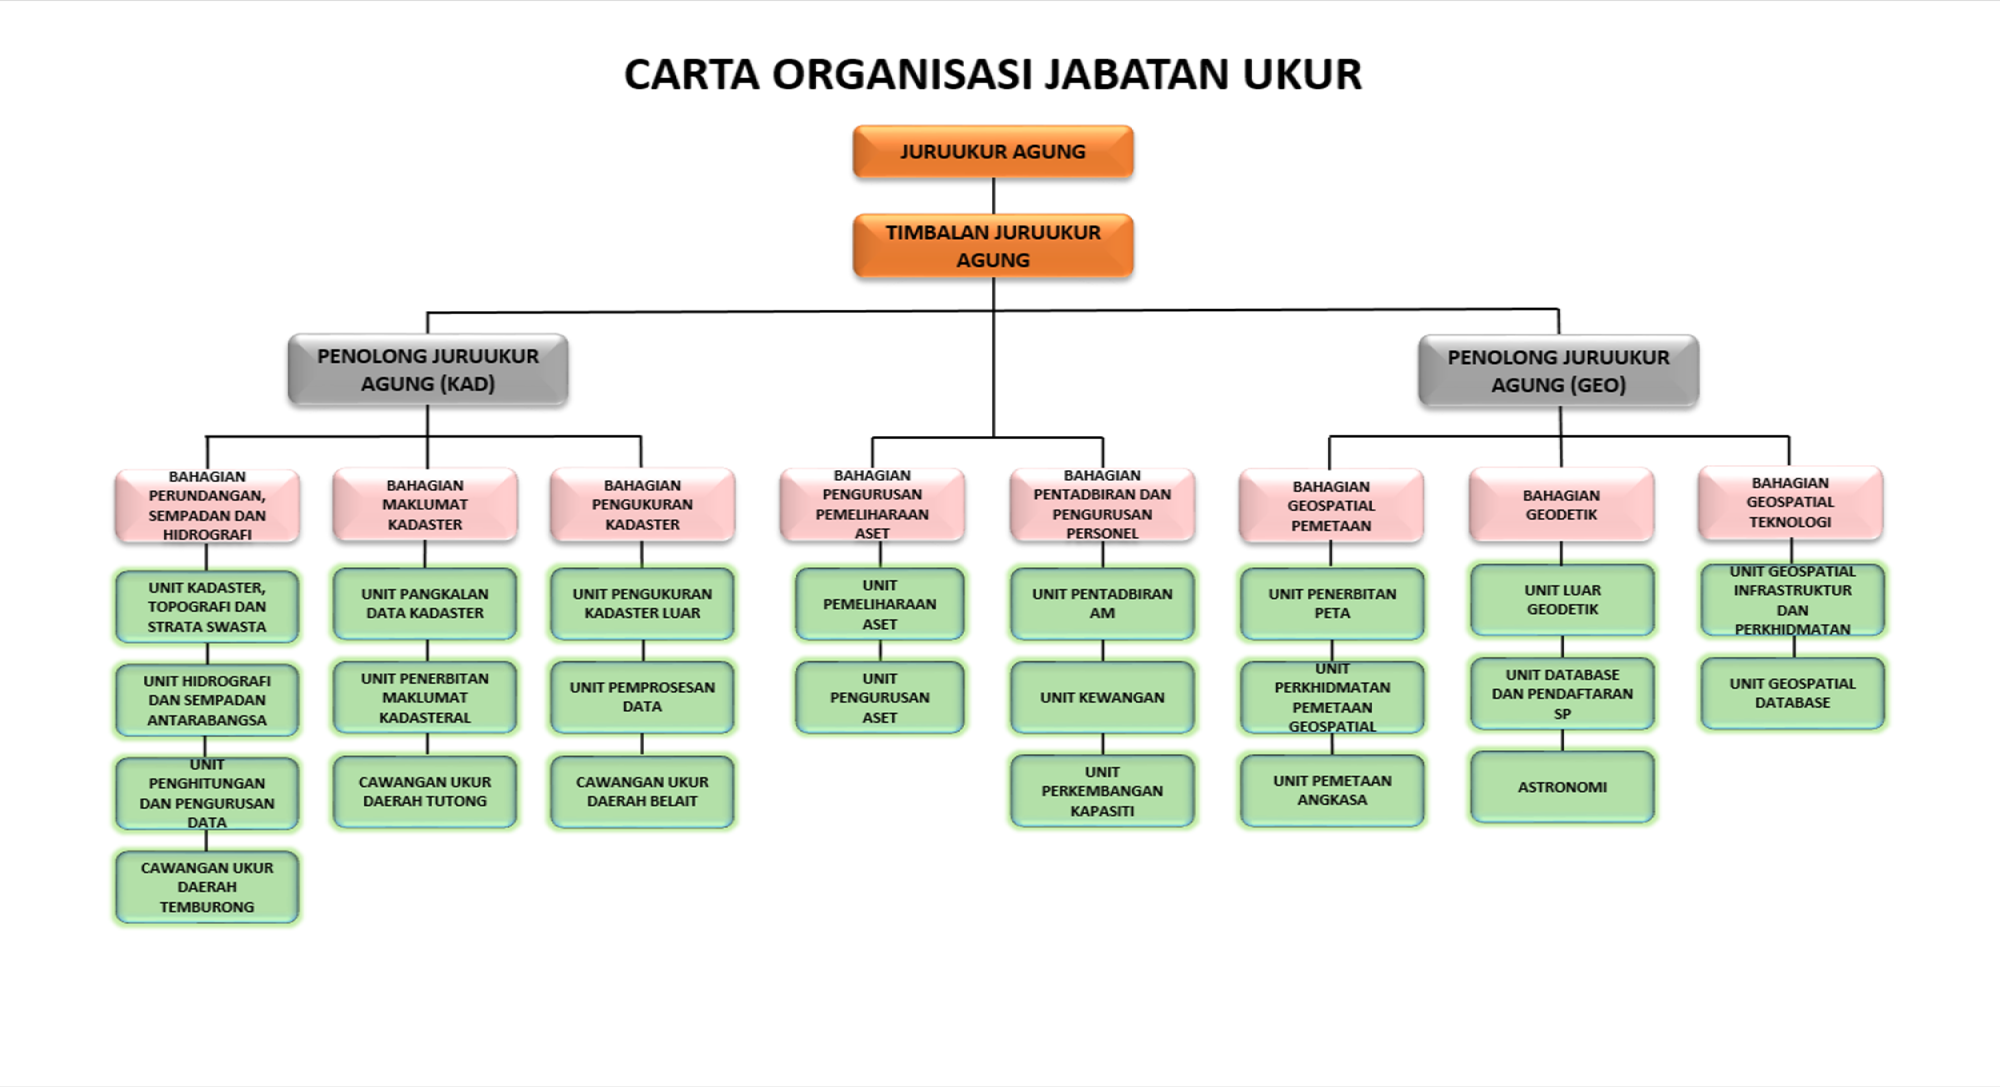 CARTA ORGANISASI UKUR_UPDATED25052019.png